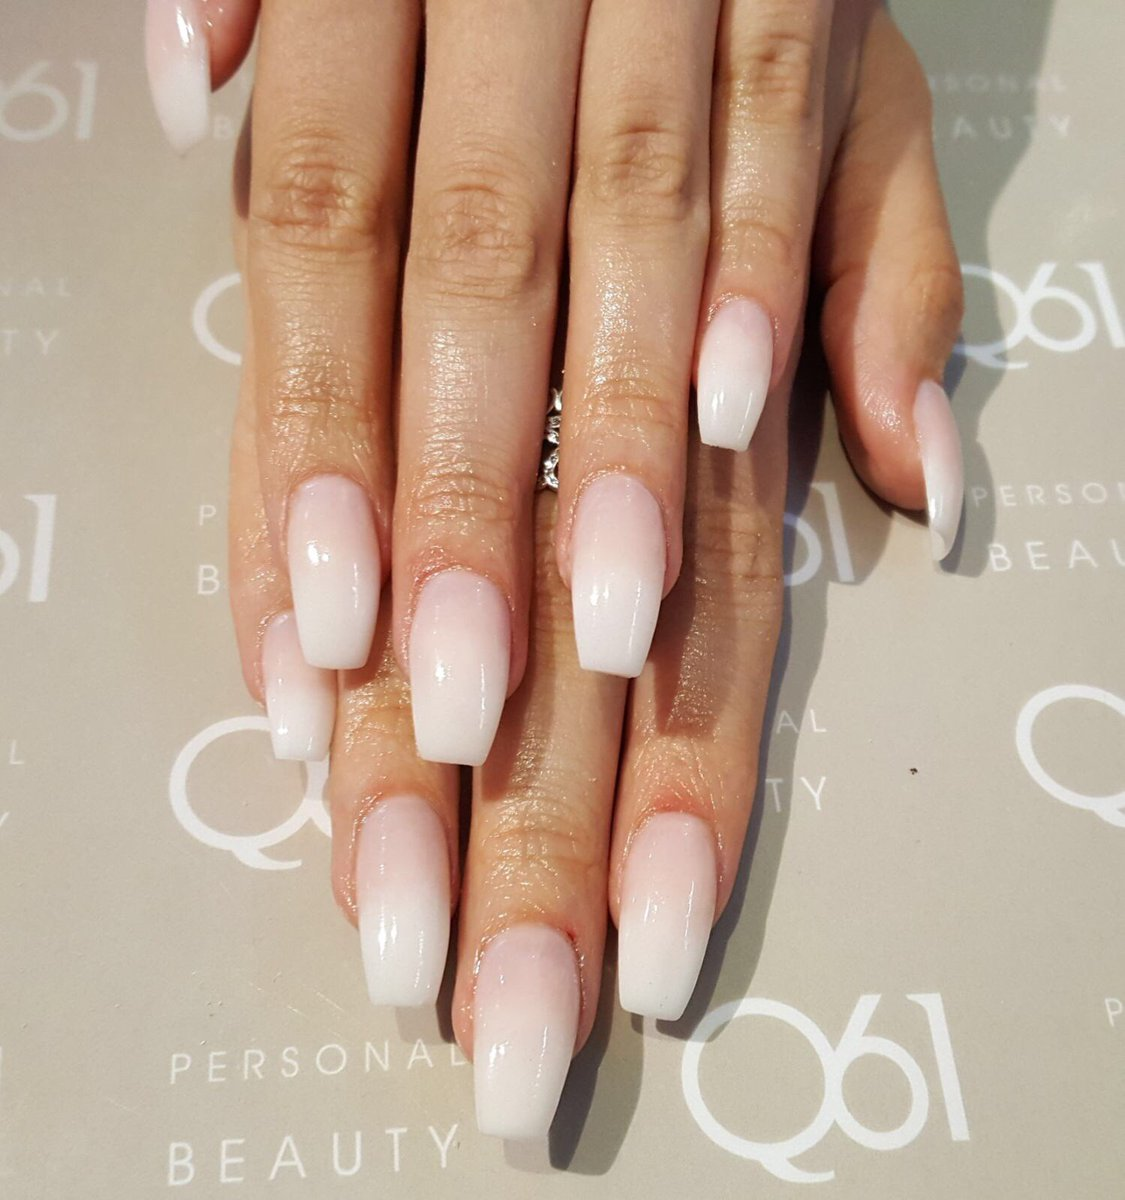 Q61 Nail Beauty Studio On Twitter Ombré Acrylic Nails Start Your Weekend Right Las Leeds Q61studio Acrylics Flashbackfriday